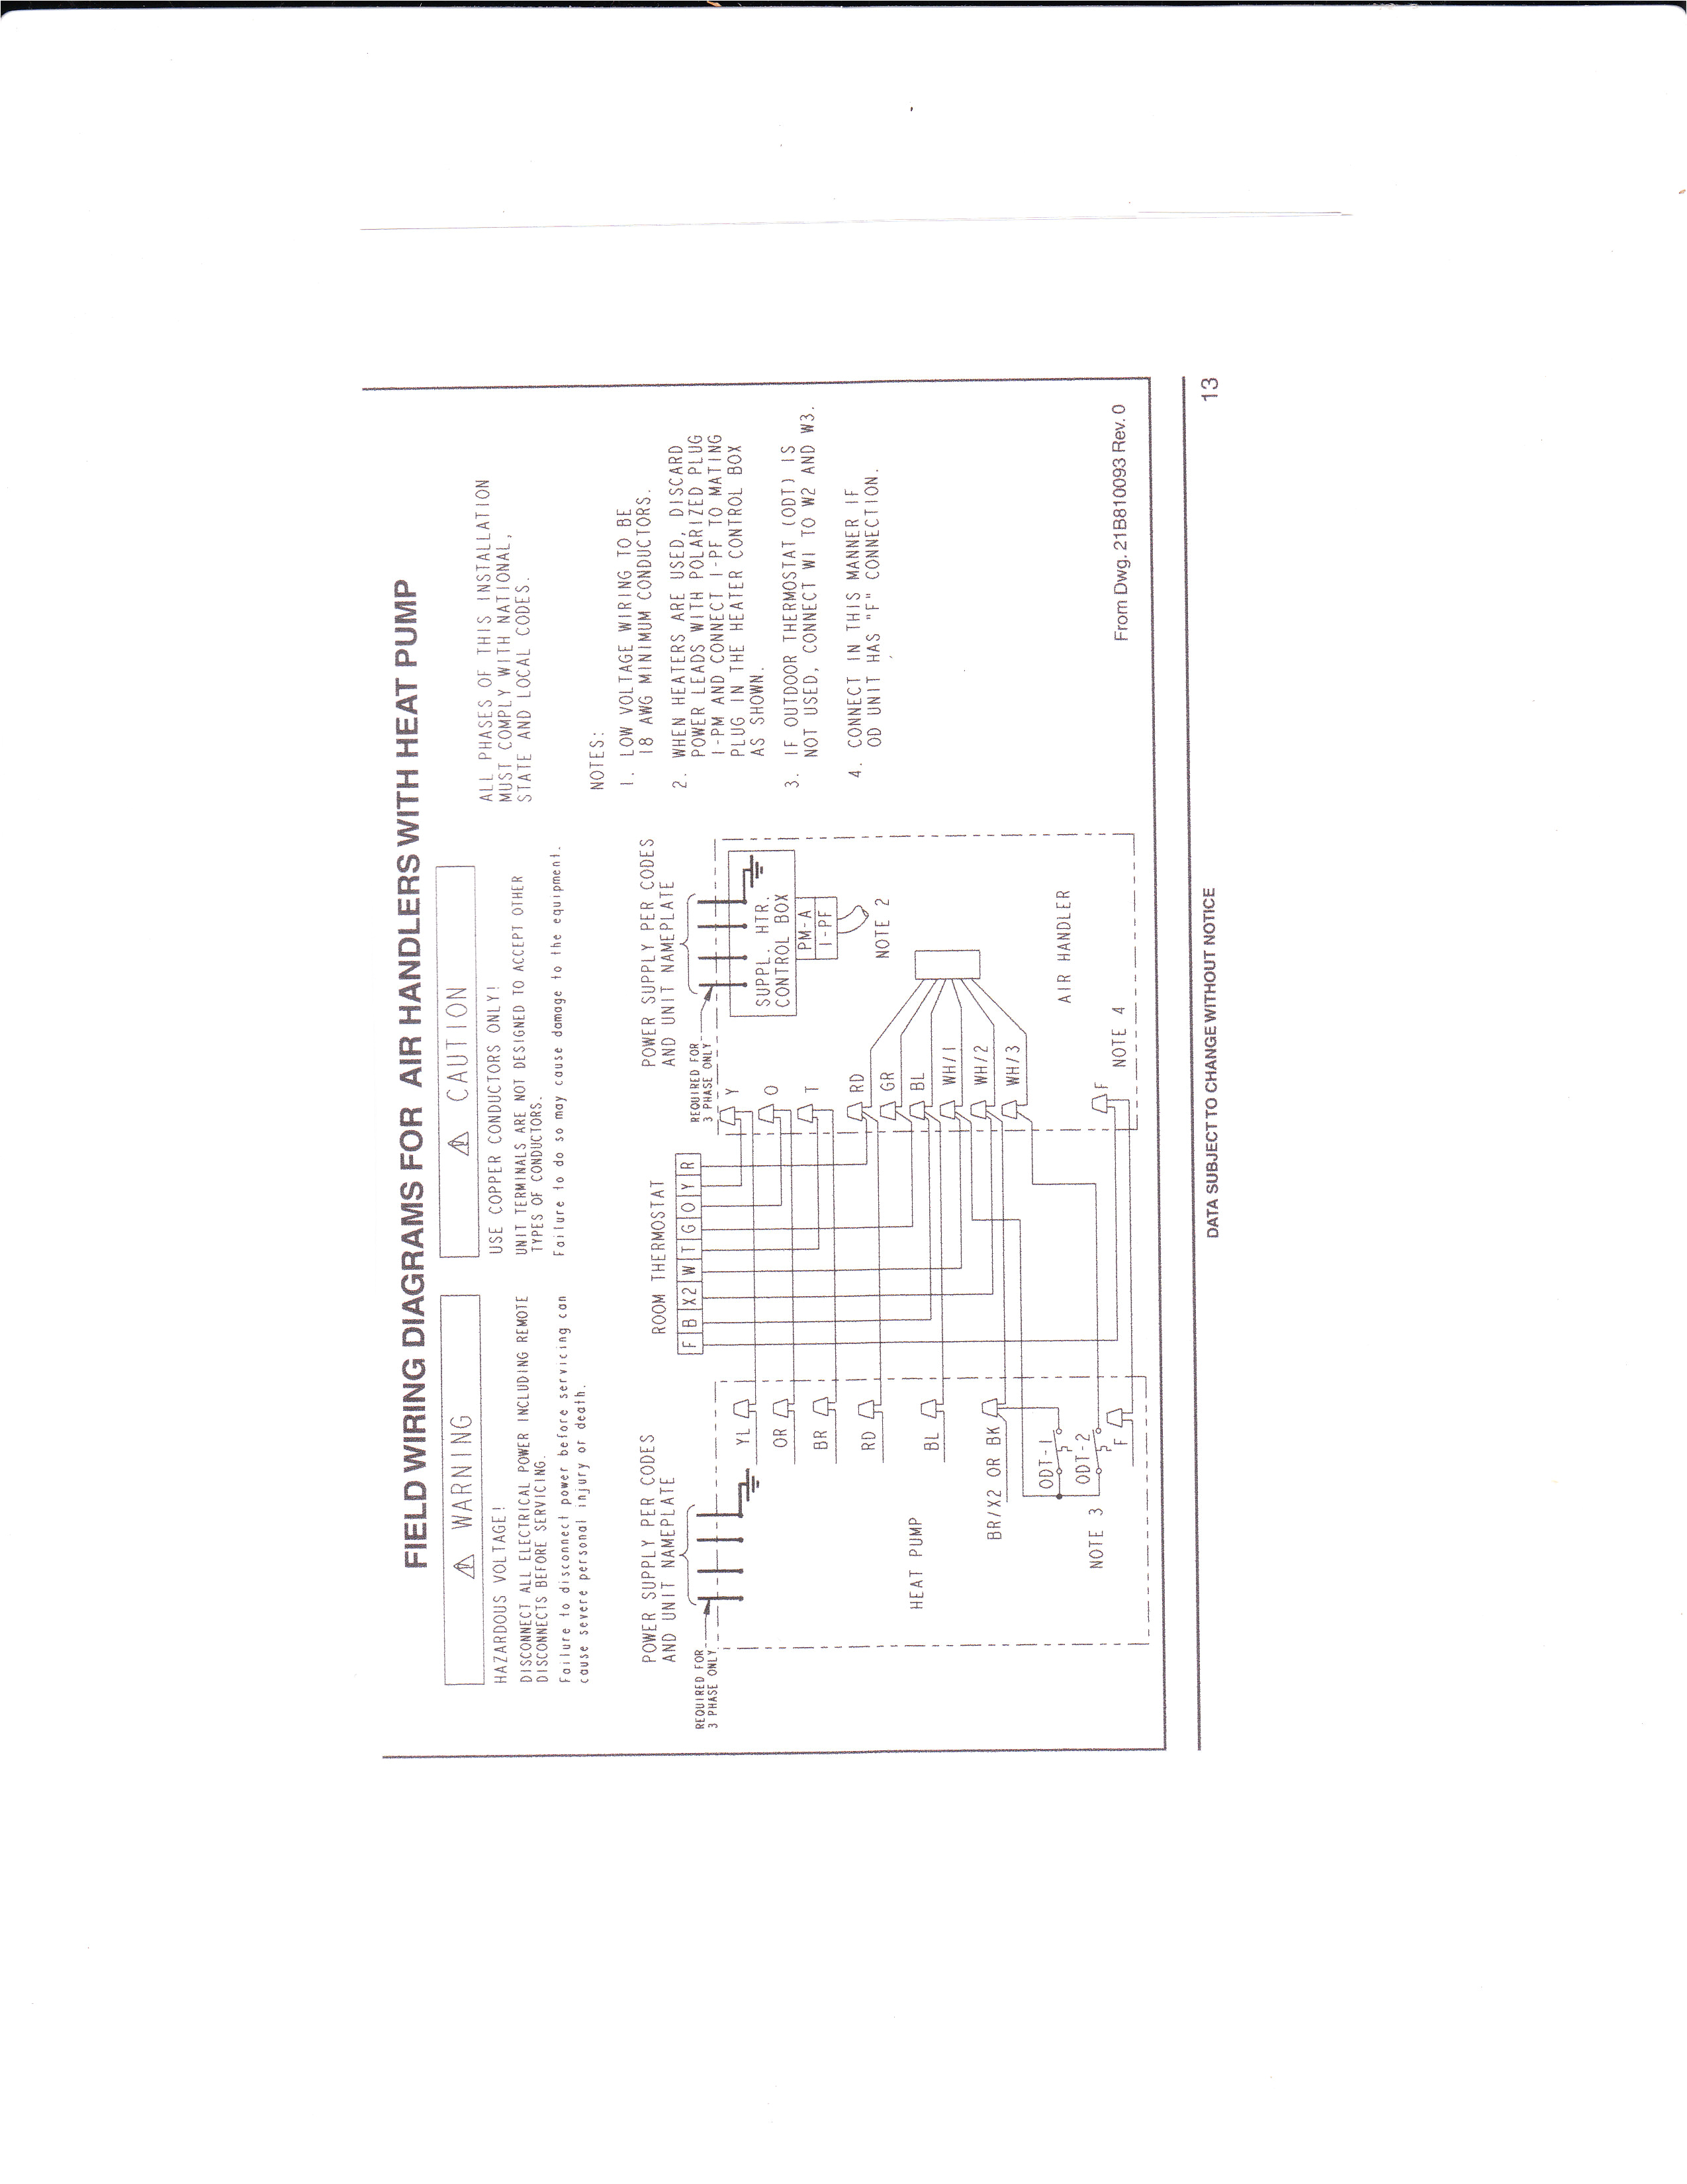 Weathertron thermostat Wiring Diagram I Have A Train that Has A Trane Weathertron thermostat It Has the